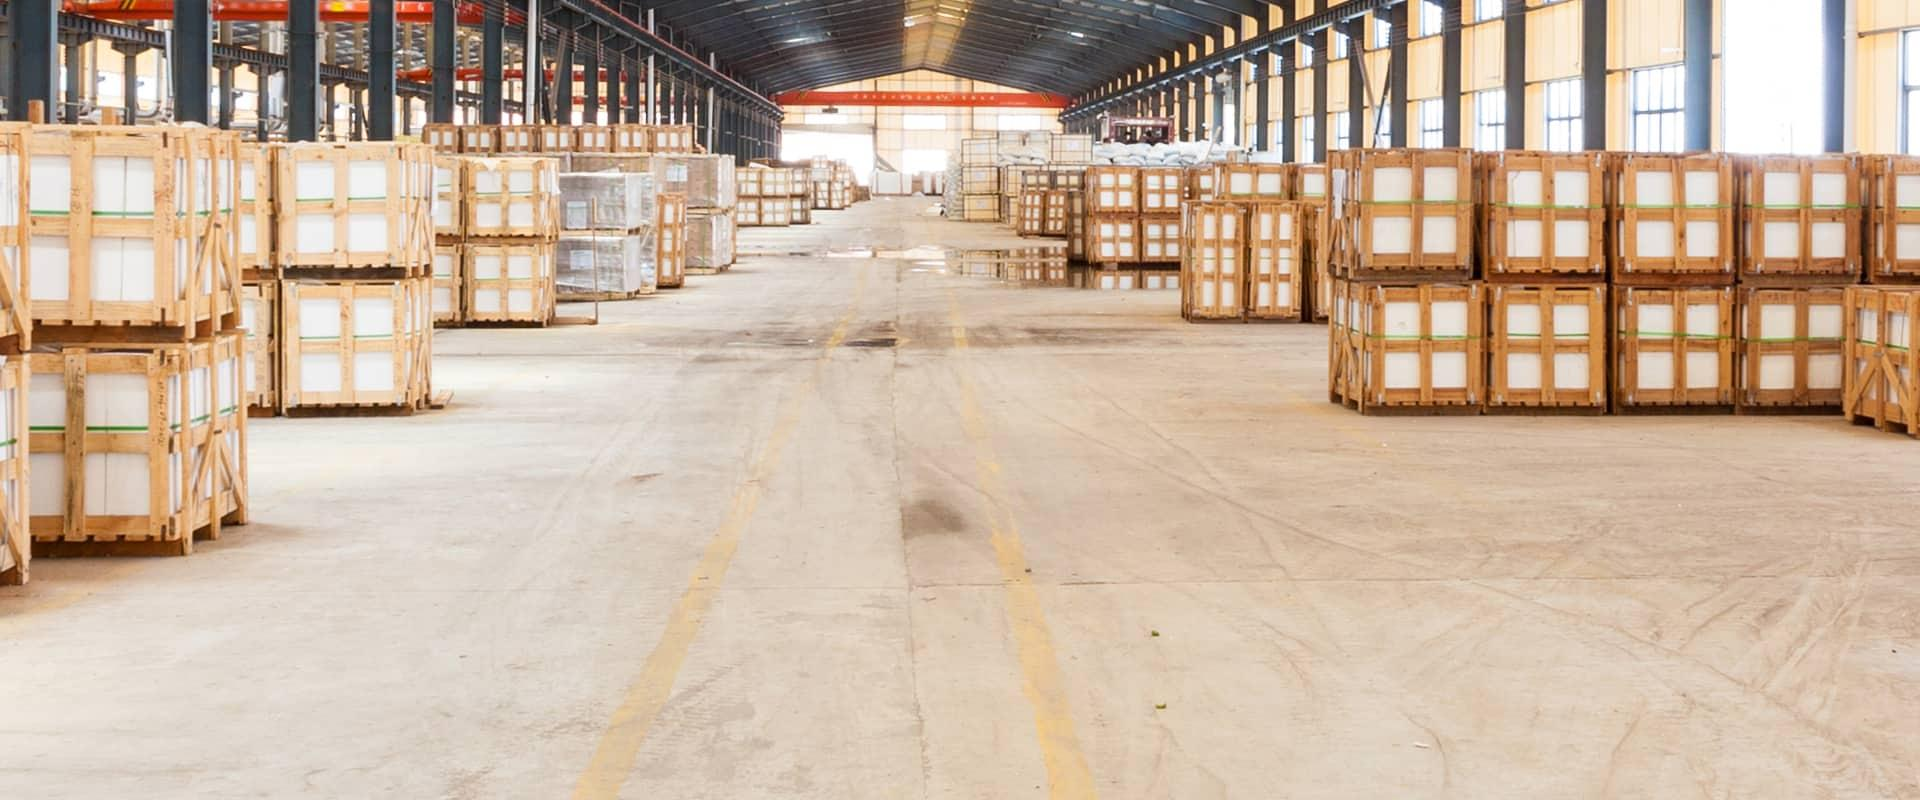 interior view of a warehouse in fort worth texas